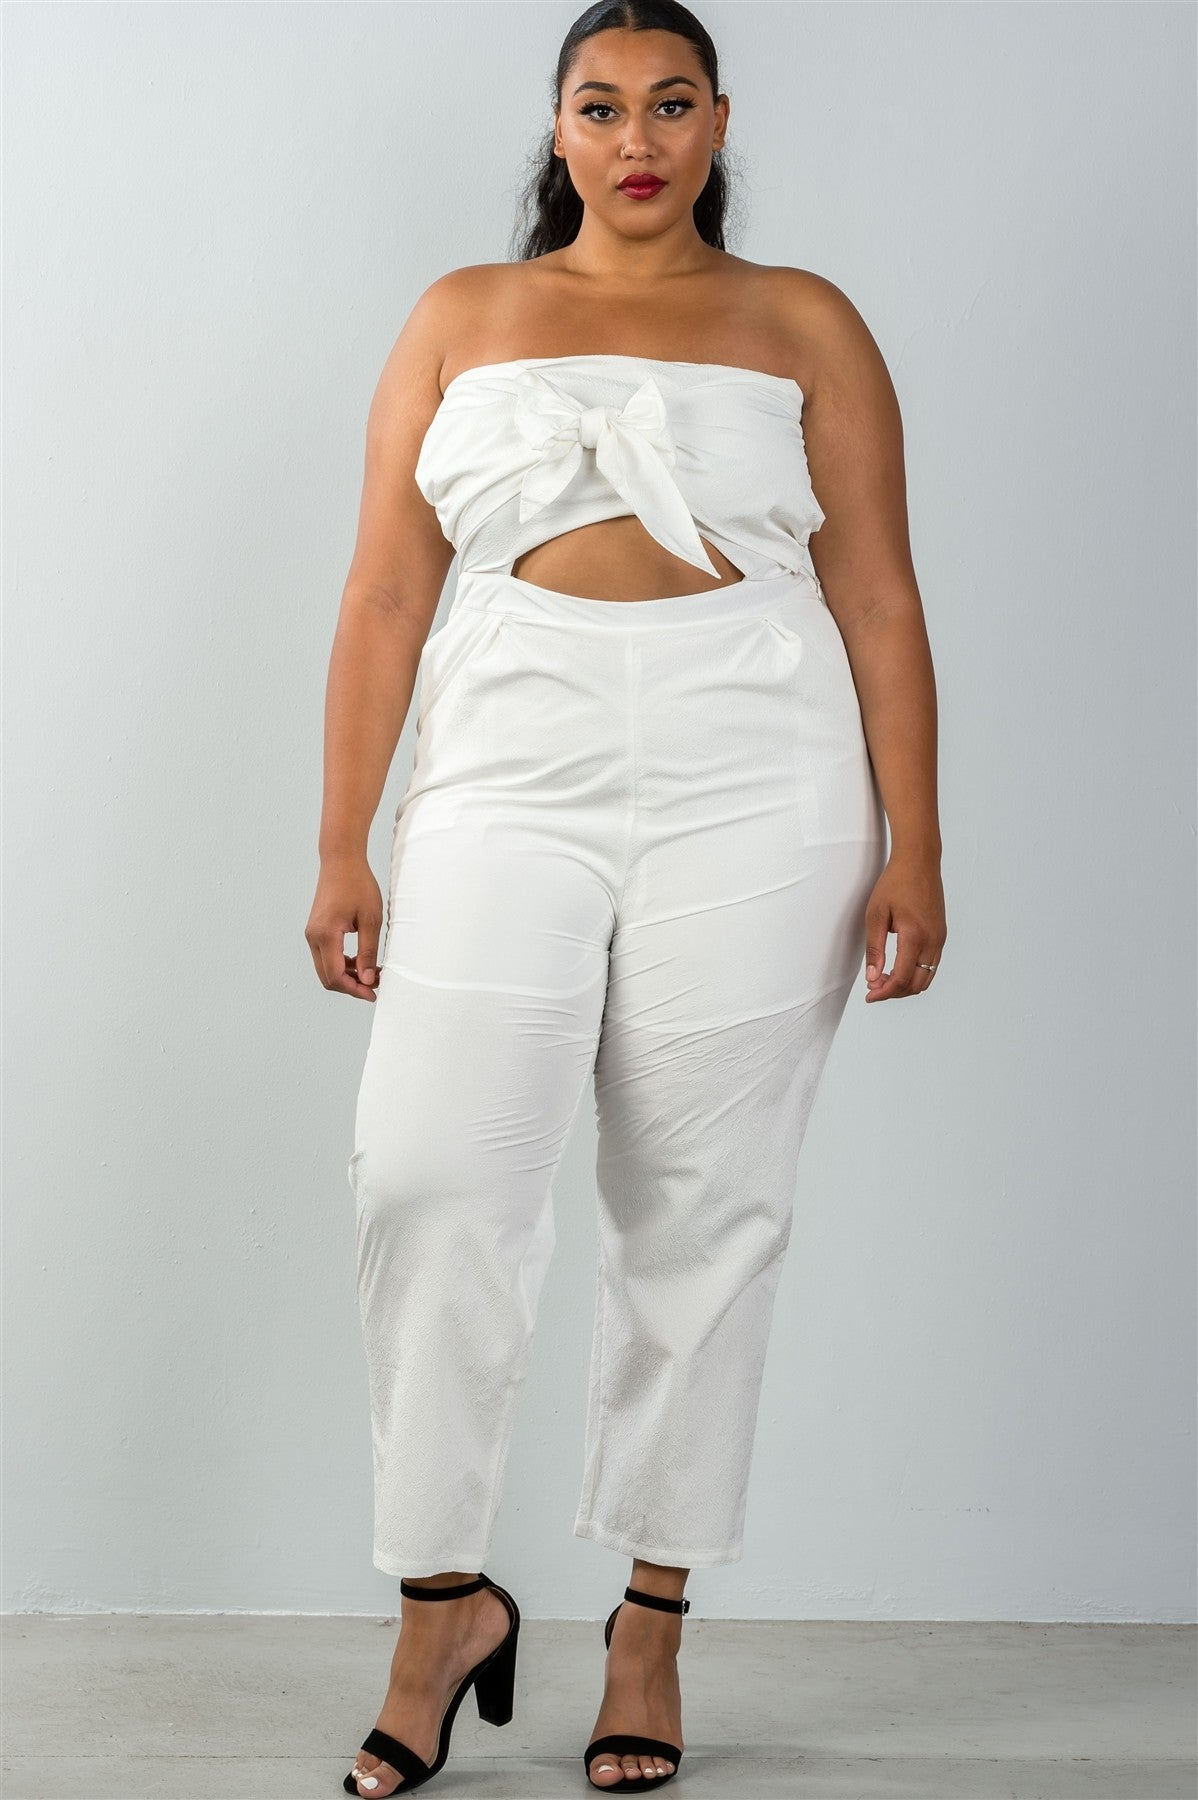 Ladies fashion plus size bow detail at front strapless jumpsuit palazzo pants